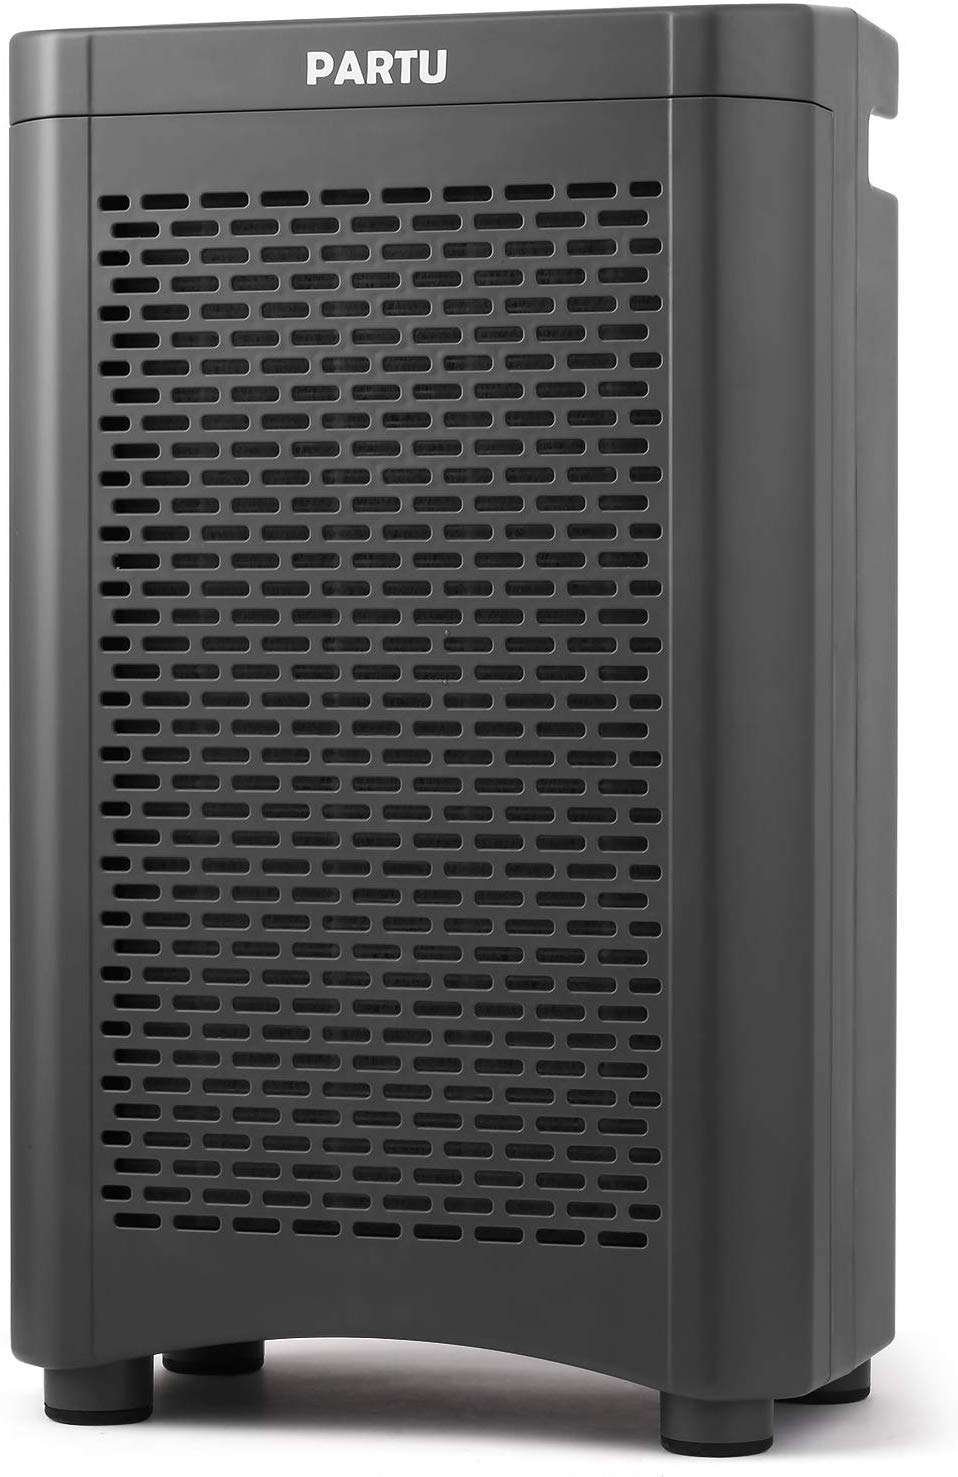 PARTU HEPA Filter Air Purifier for Home Coverage up to 300 Sq.Ft (CADR Rate 129 CFM)- Lock Set, Eliminates Smoke, Dust, Pollen, Pet Dander, (Available for California)